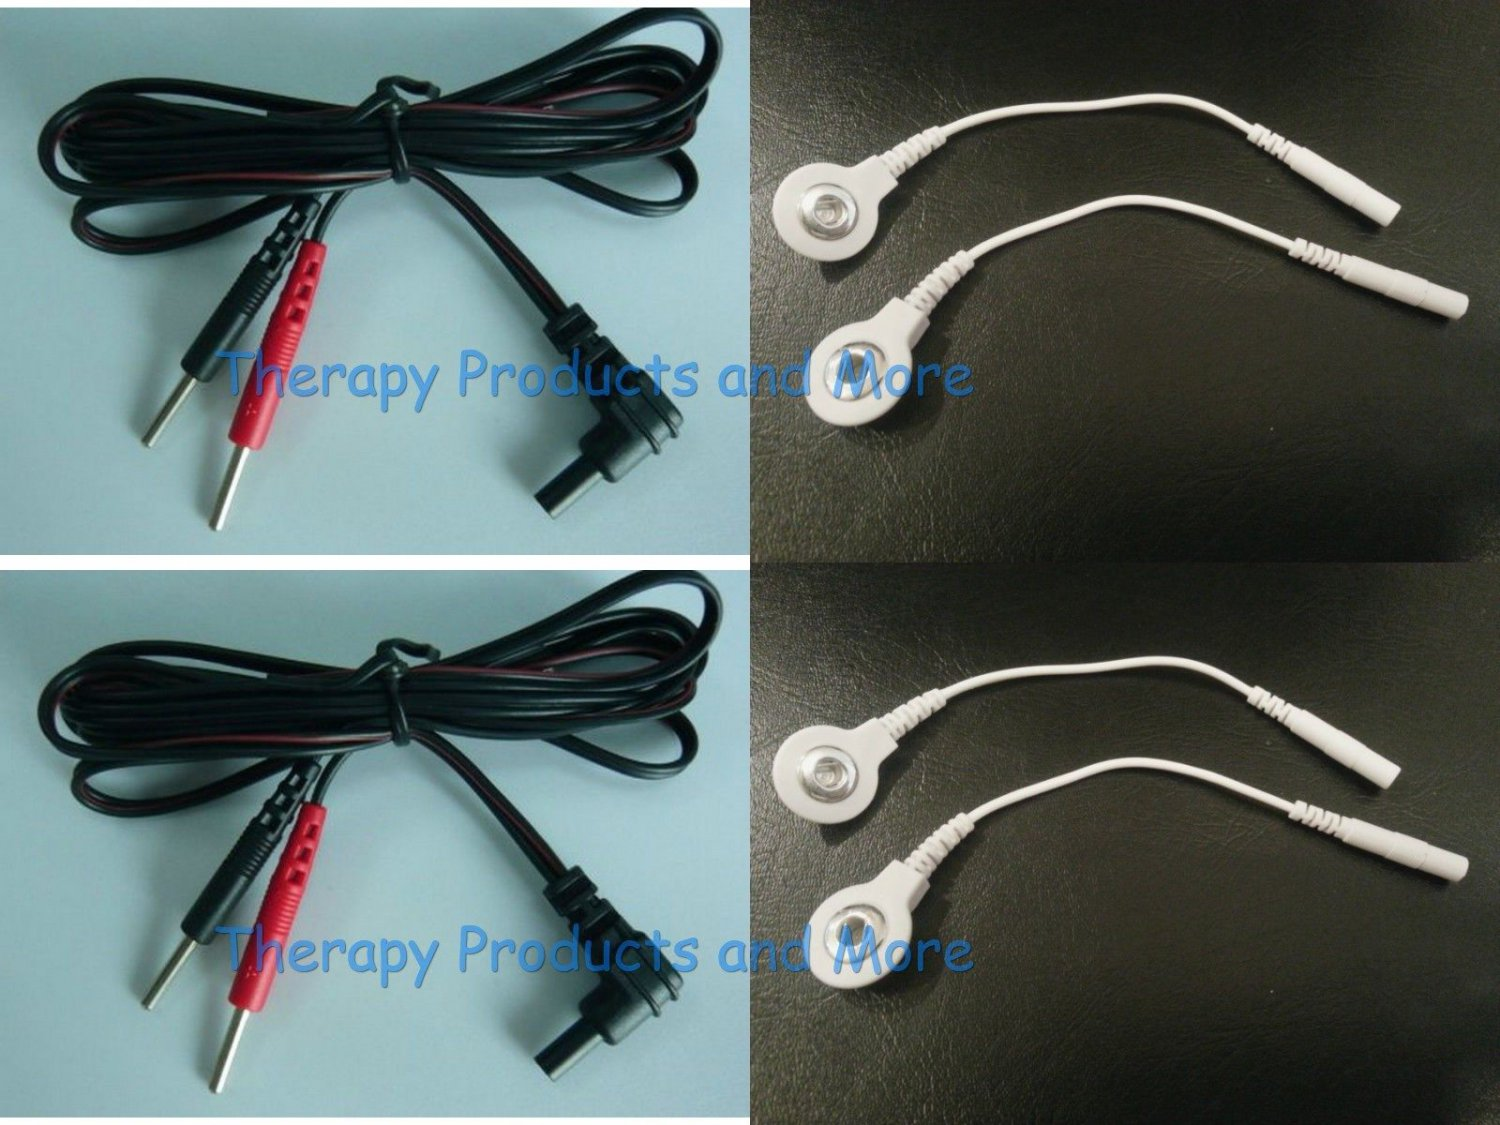 Replacement Electrode Cables for TENS 3000 7000 Intensity -Use Snap or Pin Pads